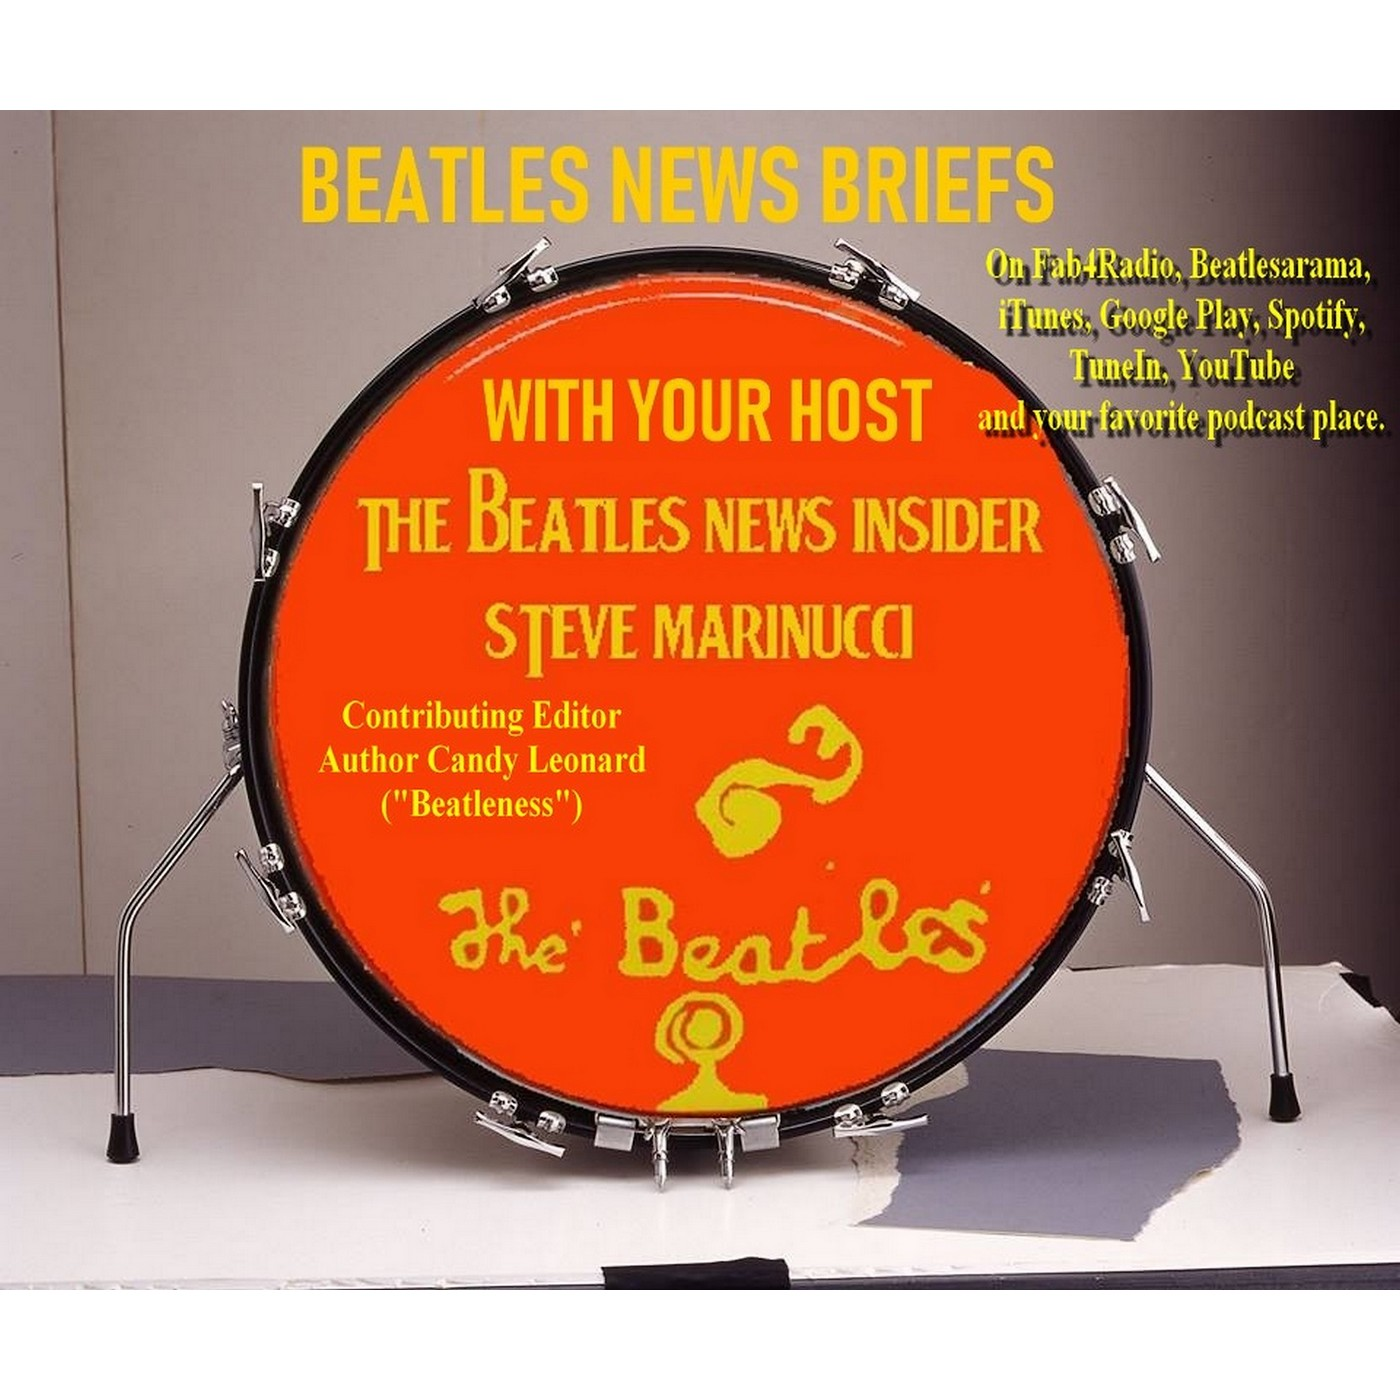 Beatles News Briefs